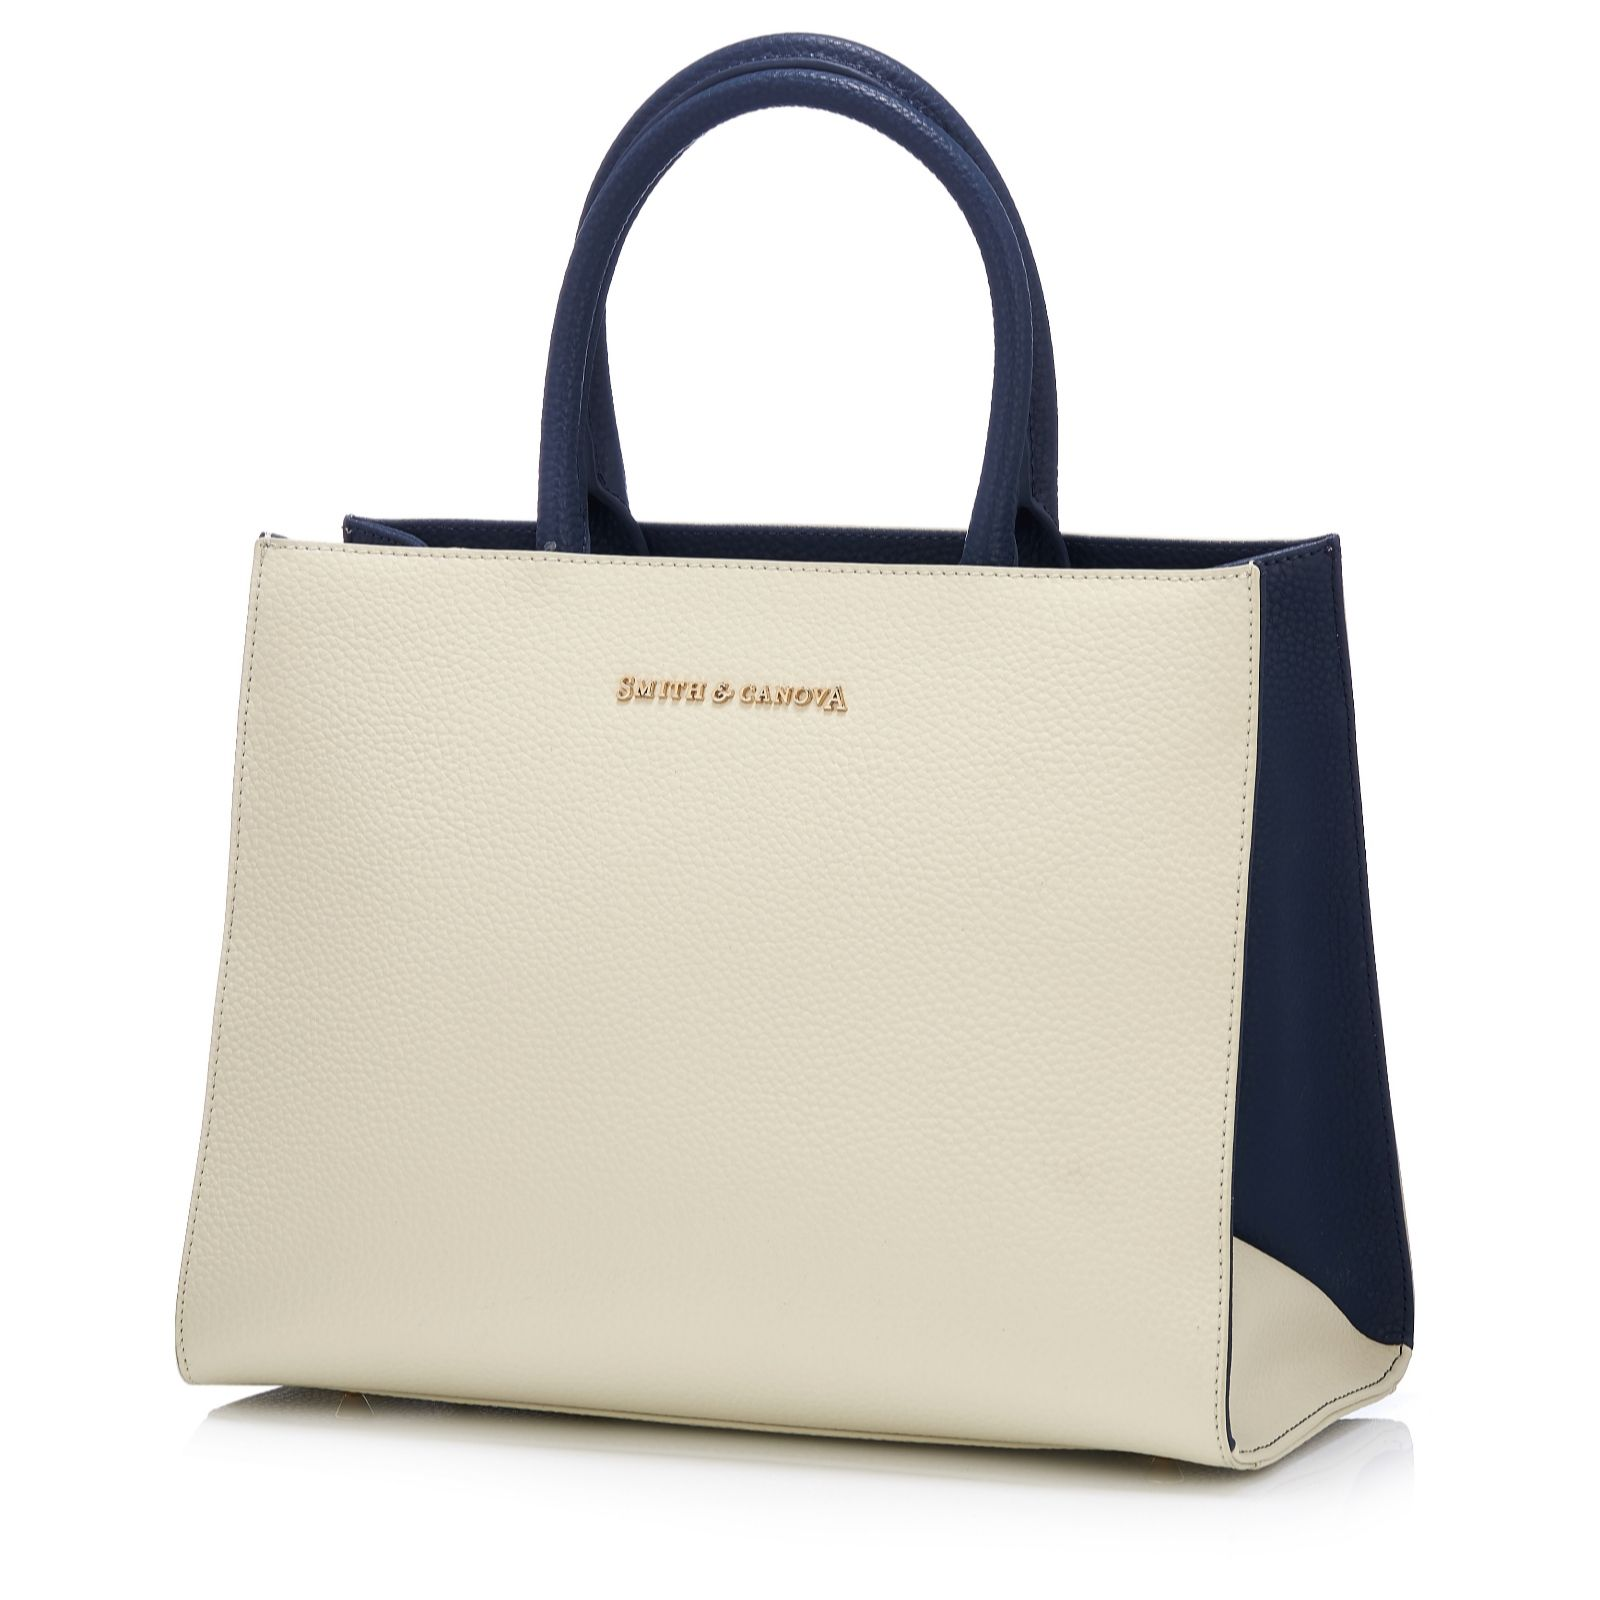 Smith   Canova Sophie Leather Tote Bag with Detachable Strap ... cb3df42acbfab